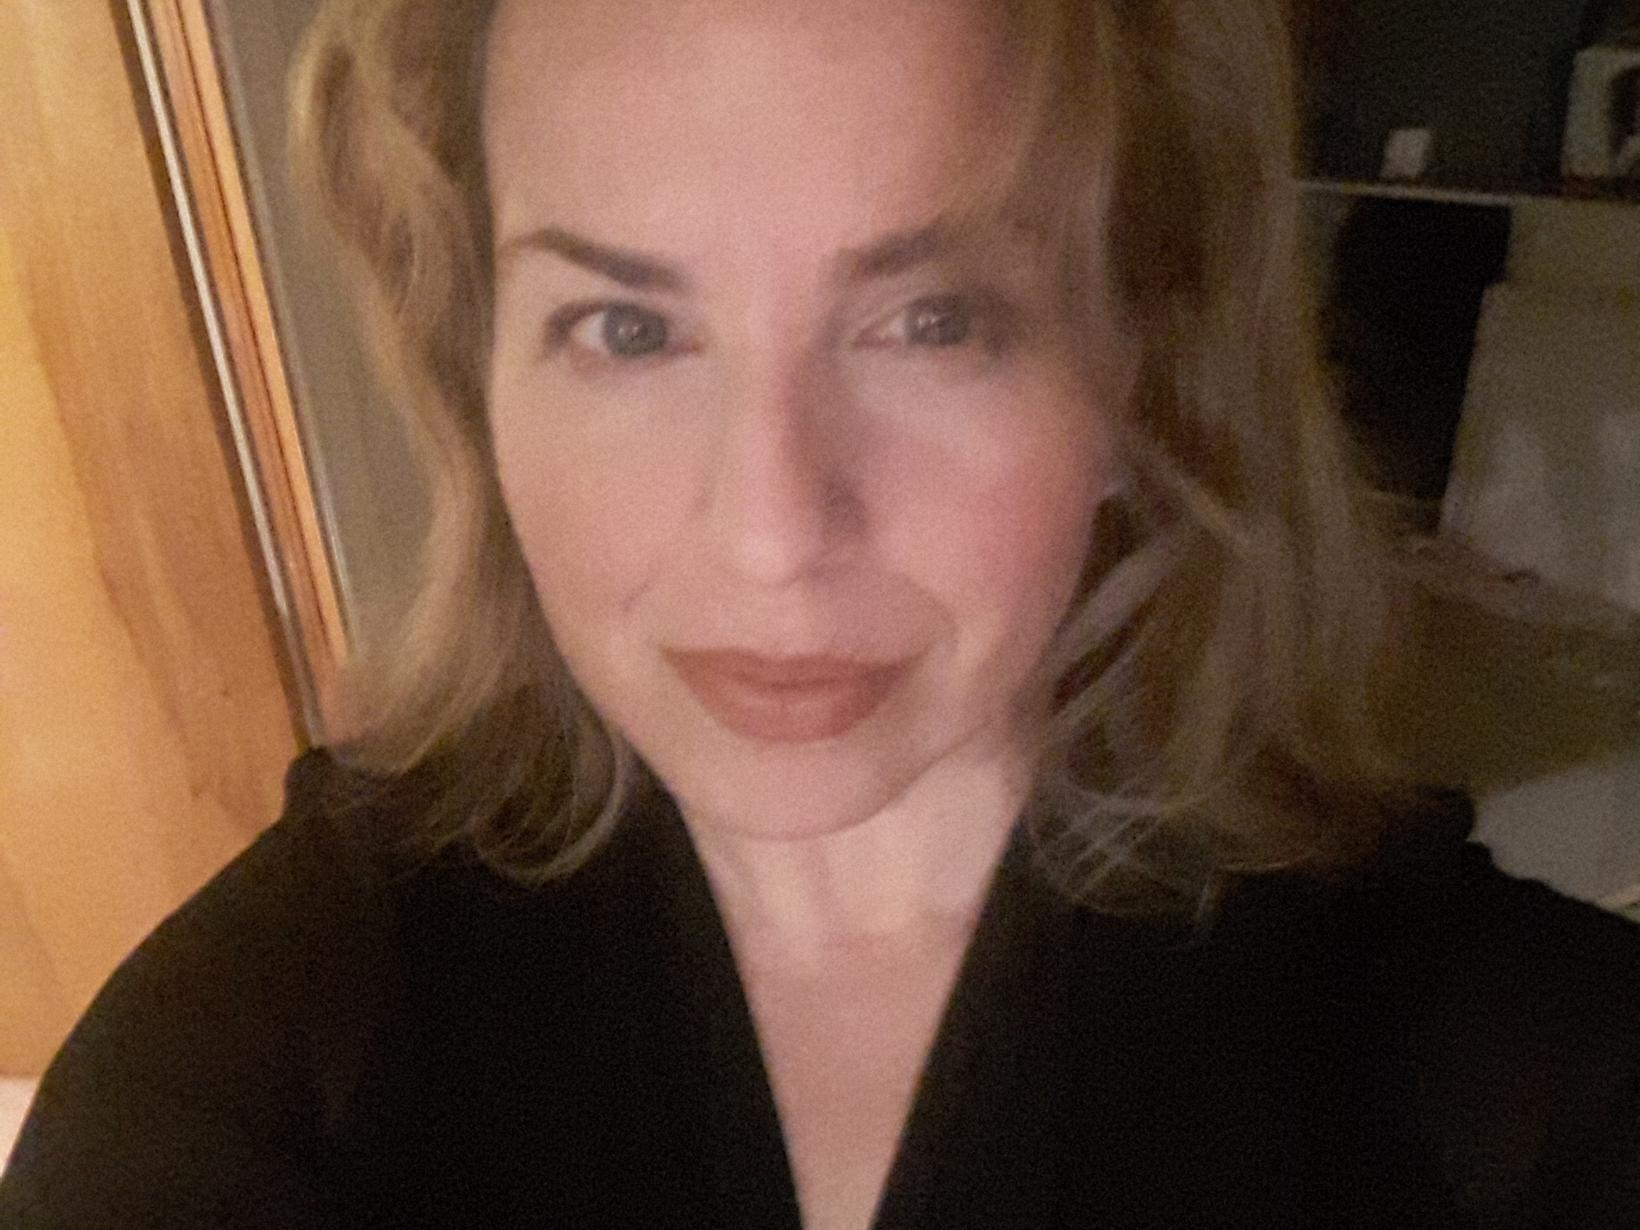 Laurie from Ottawa, Ontario, Canada